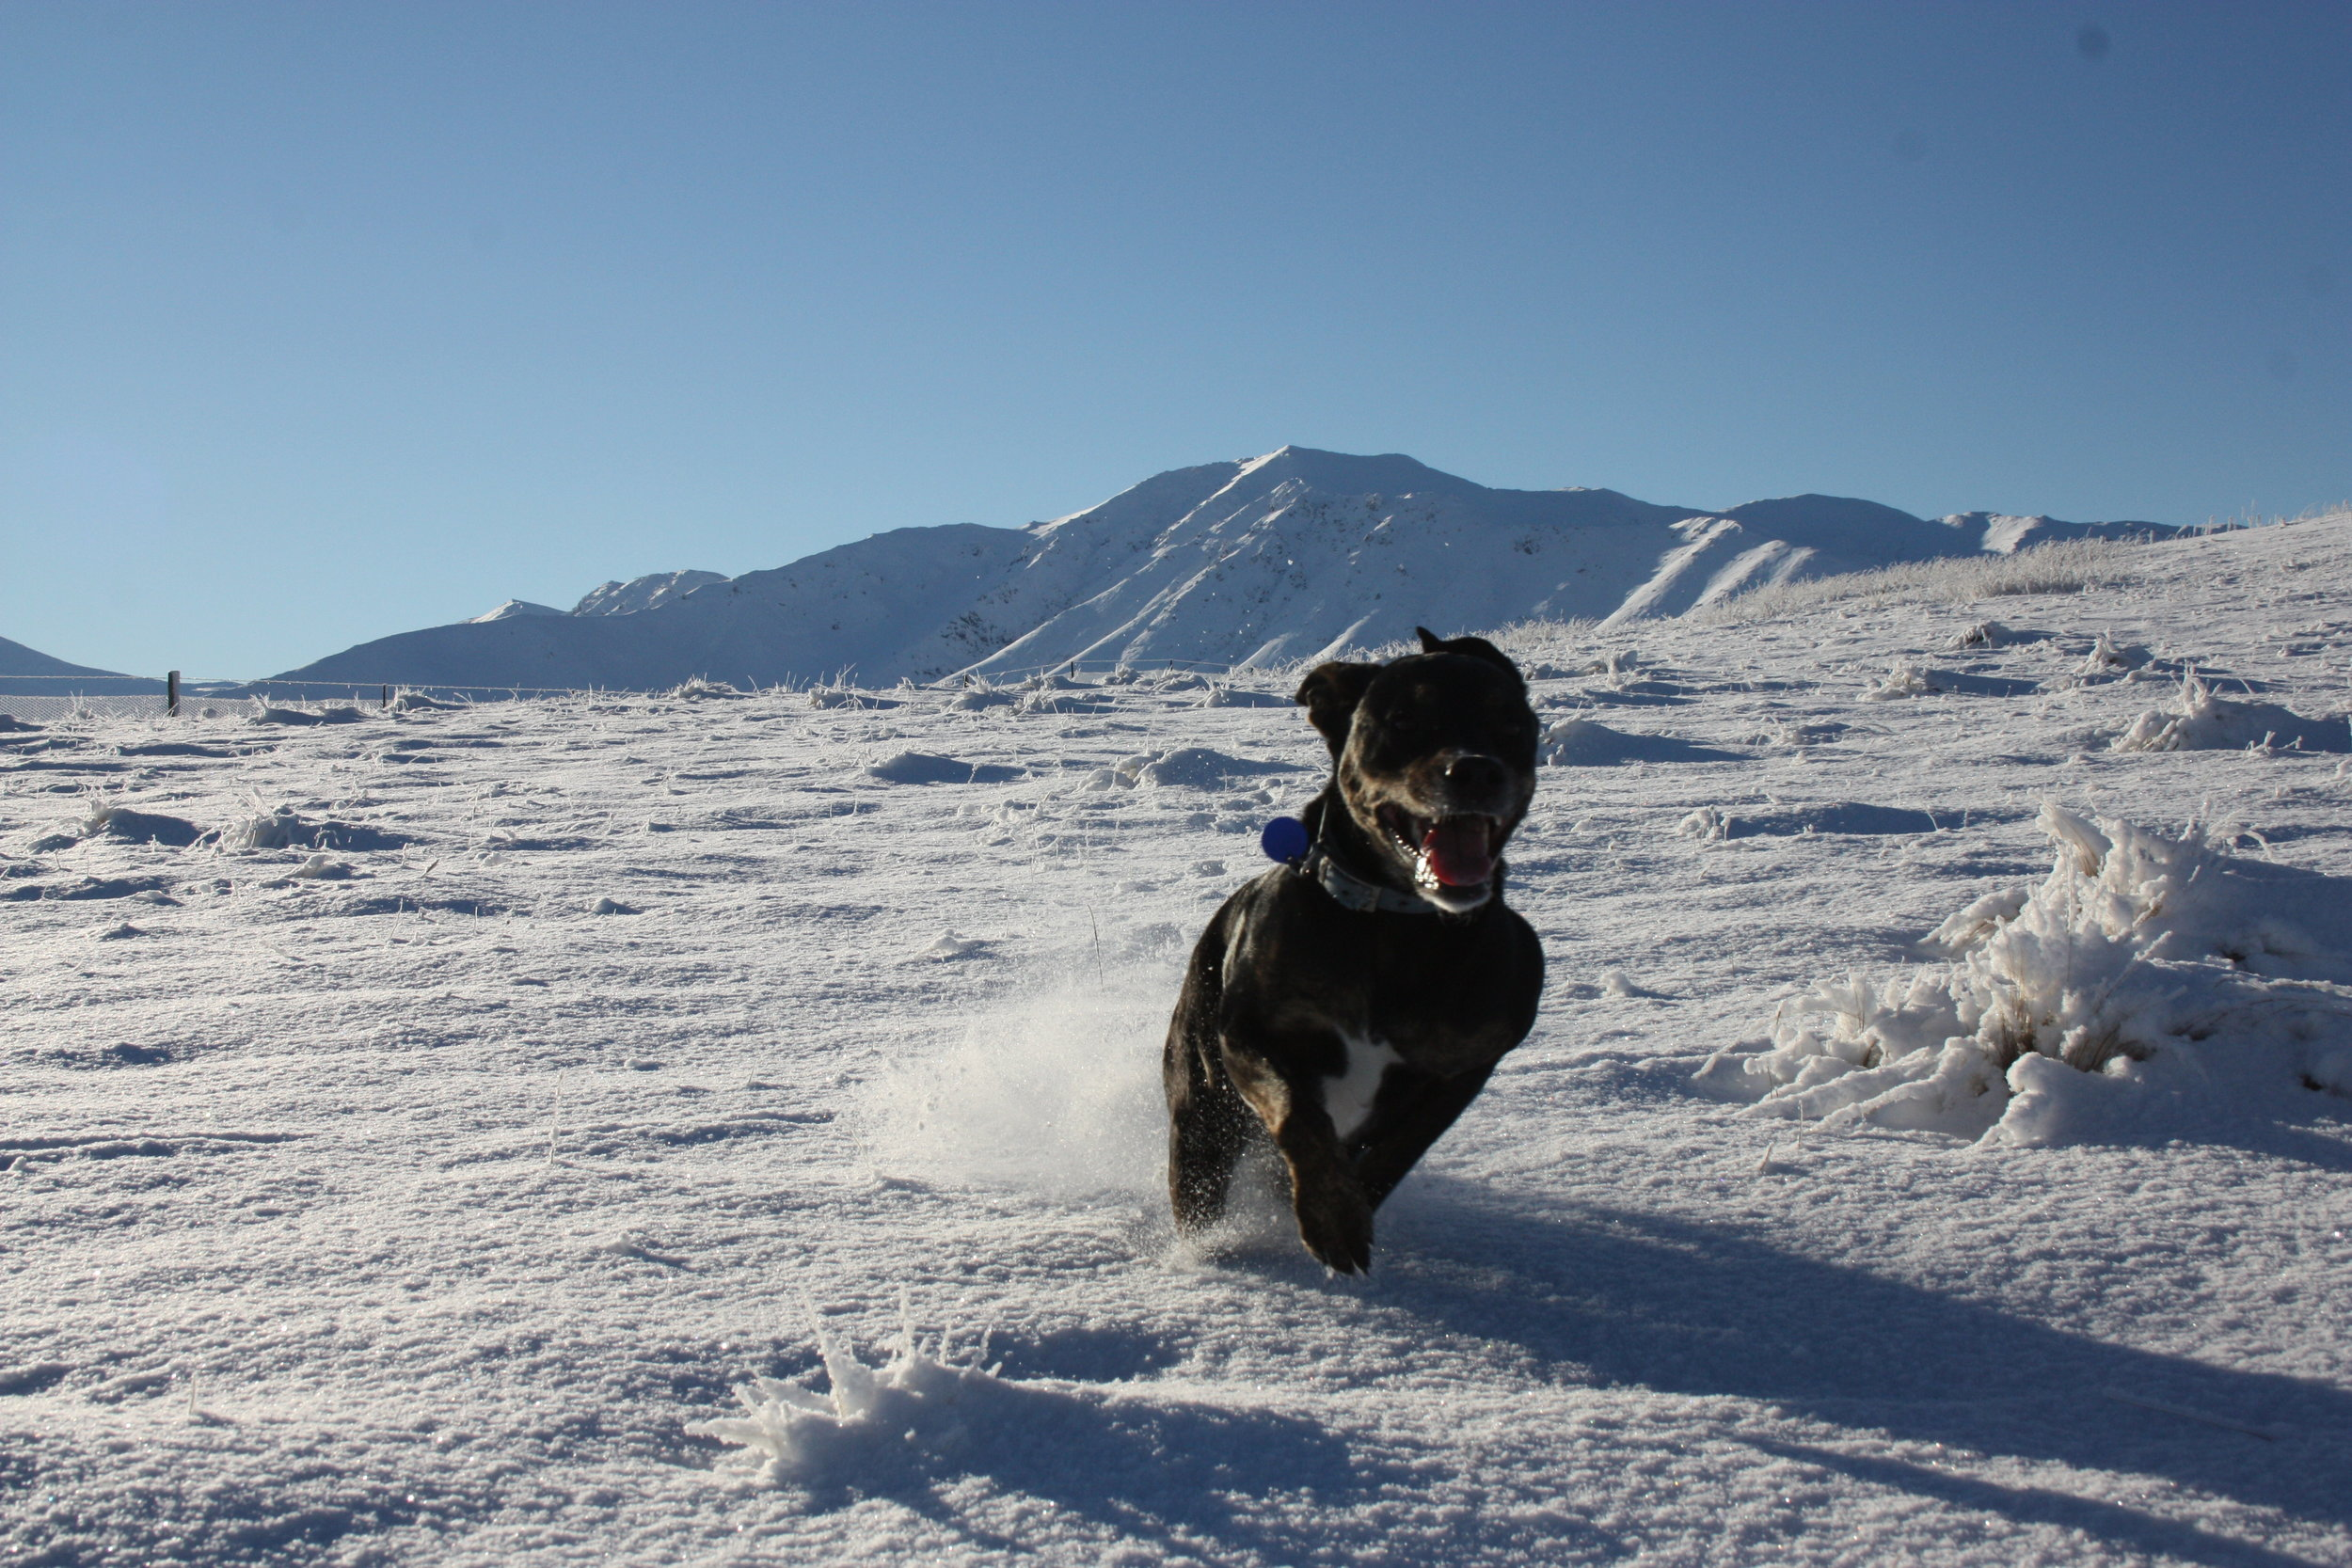 Even the dog enjoyed the freedom to play!